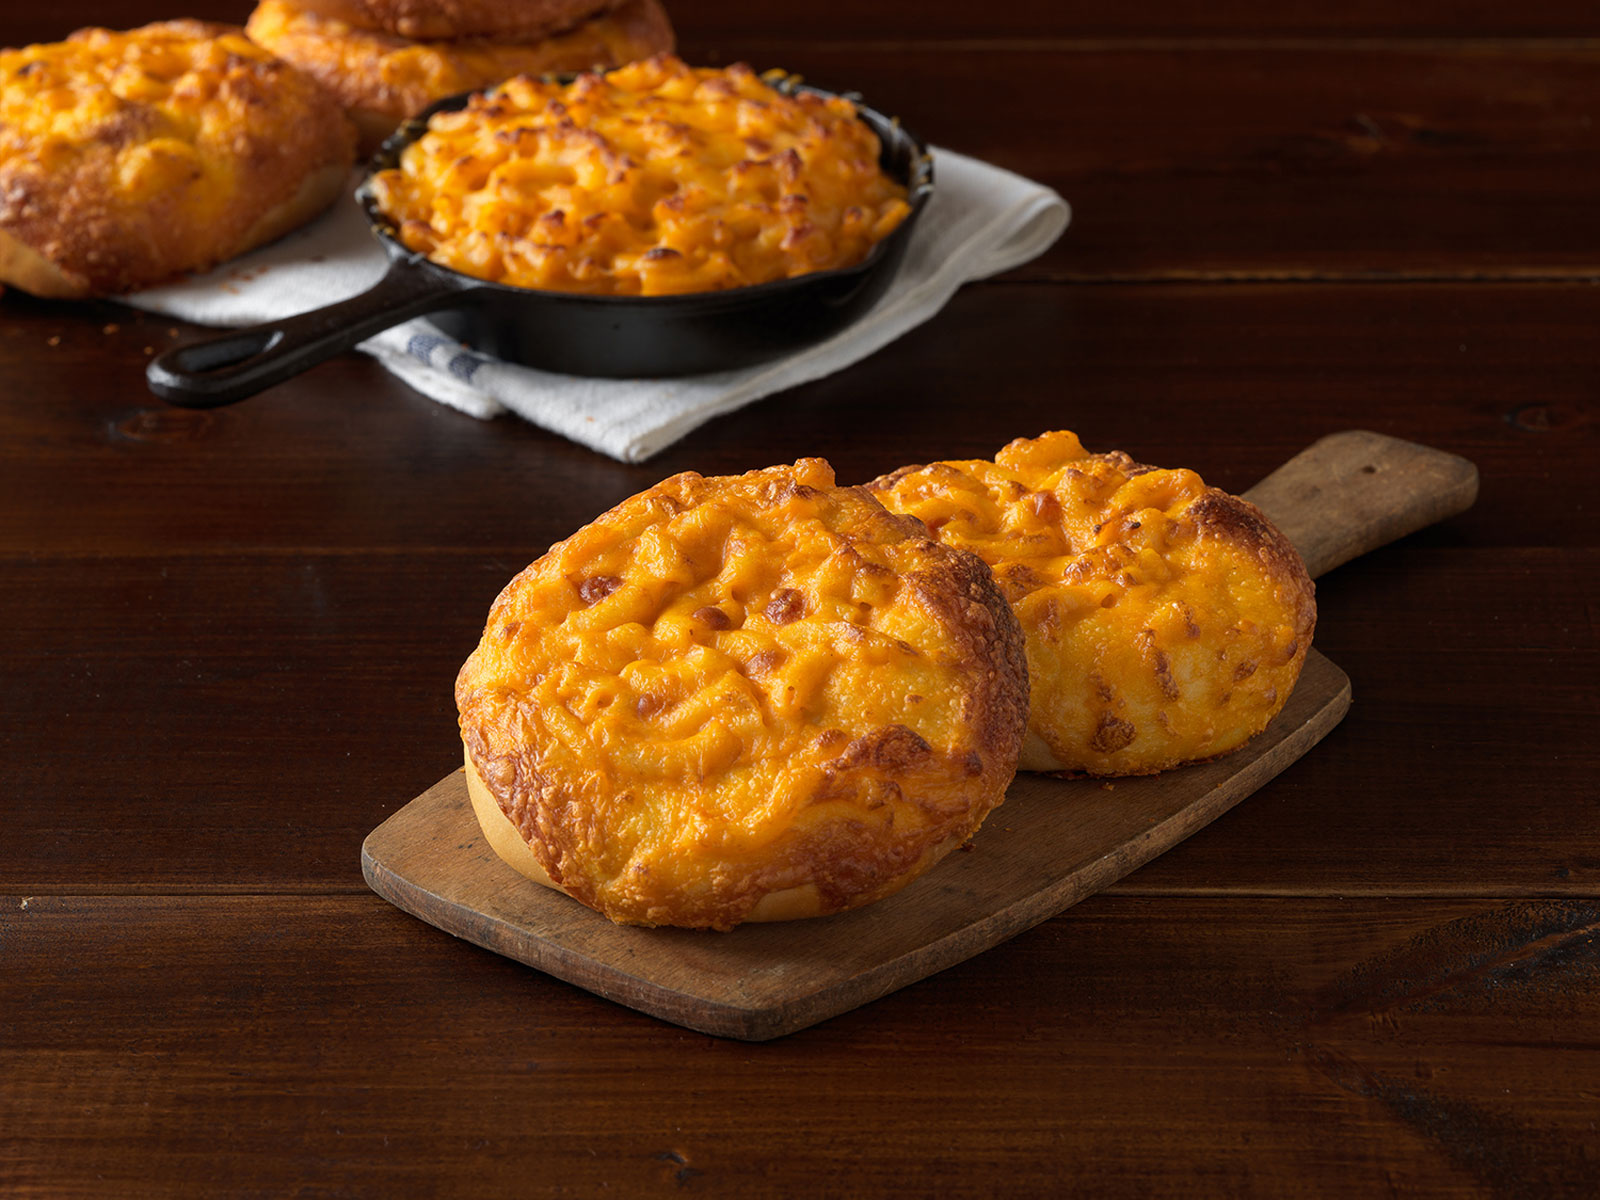 einstein-bros-mac-cheese-bagel2-FT-BLOG0518.jpg